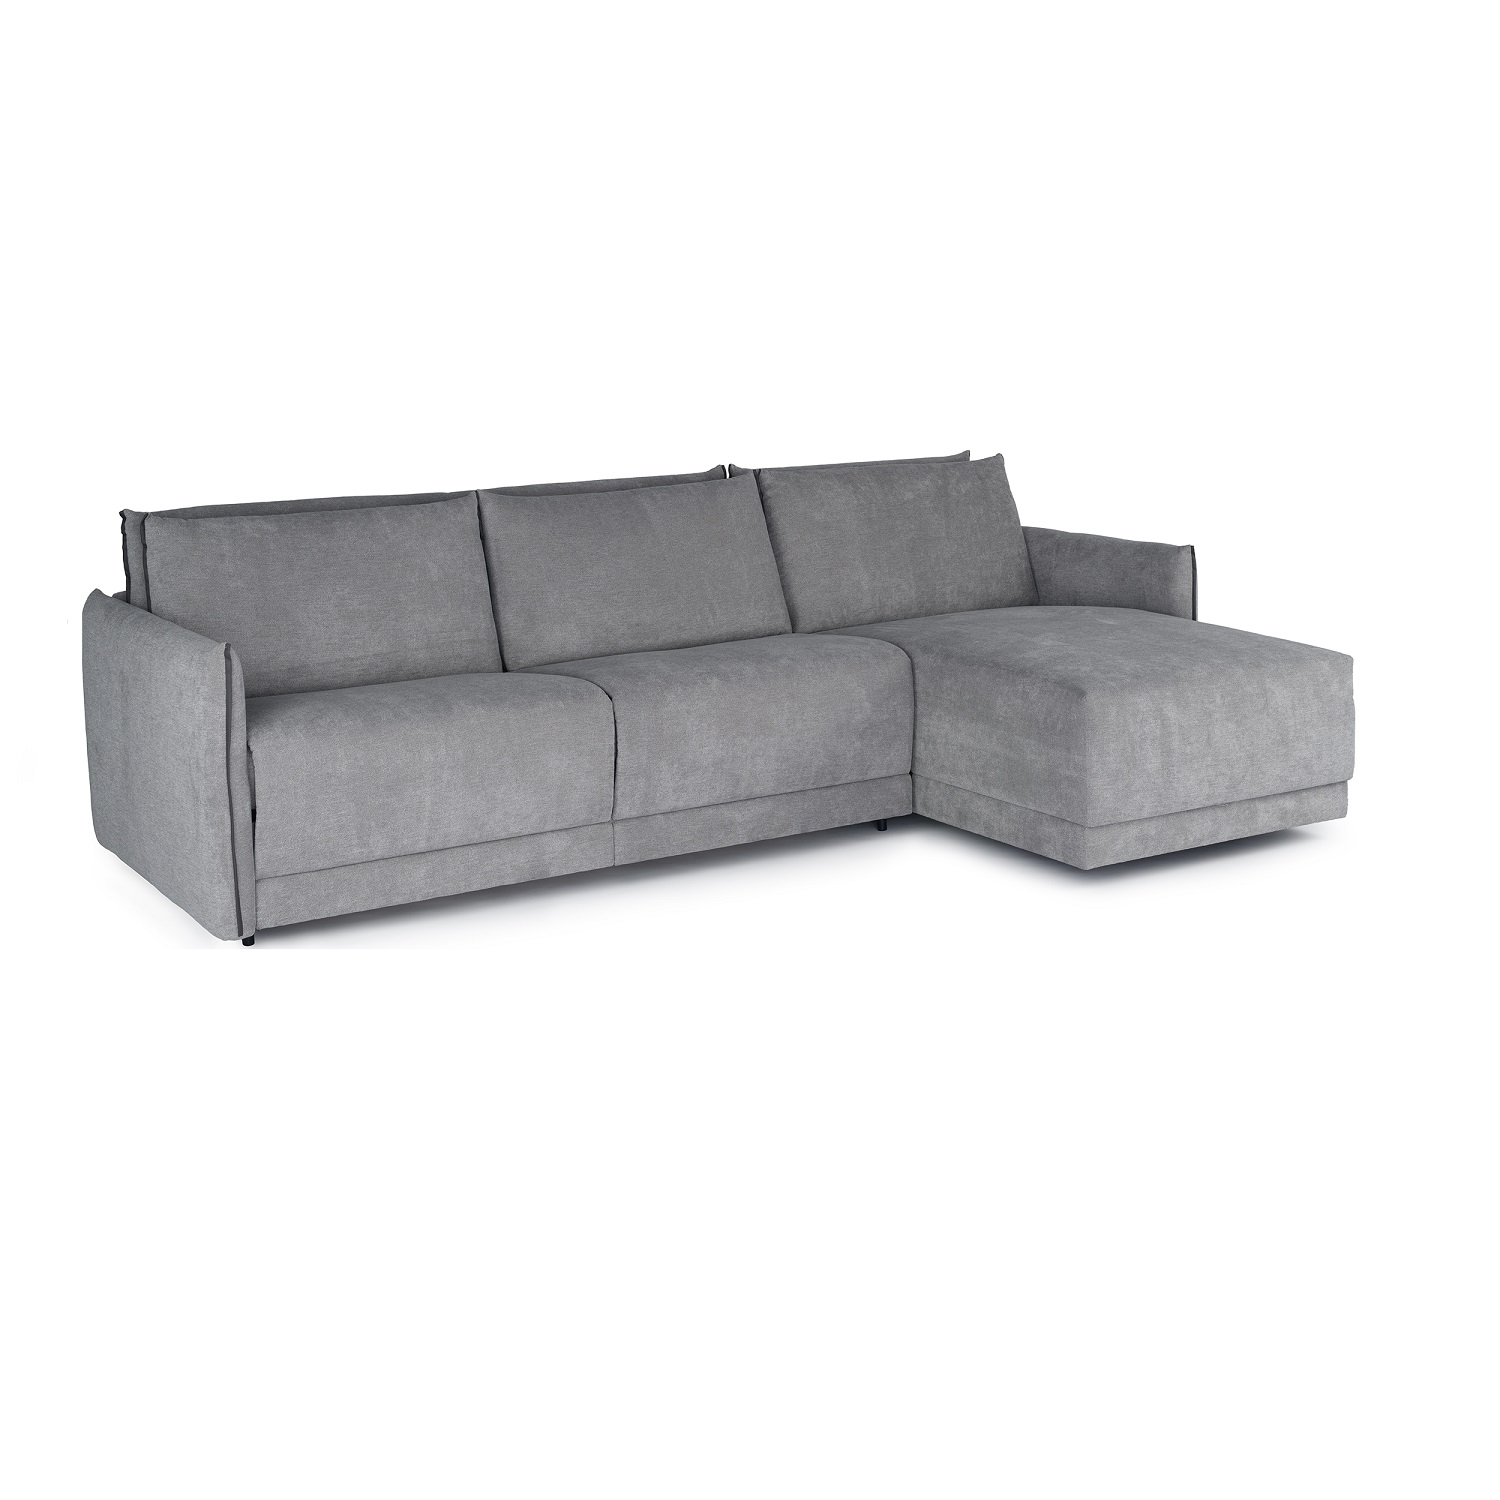 The Luxx Sofa Sleeper